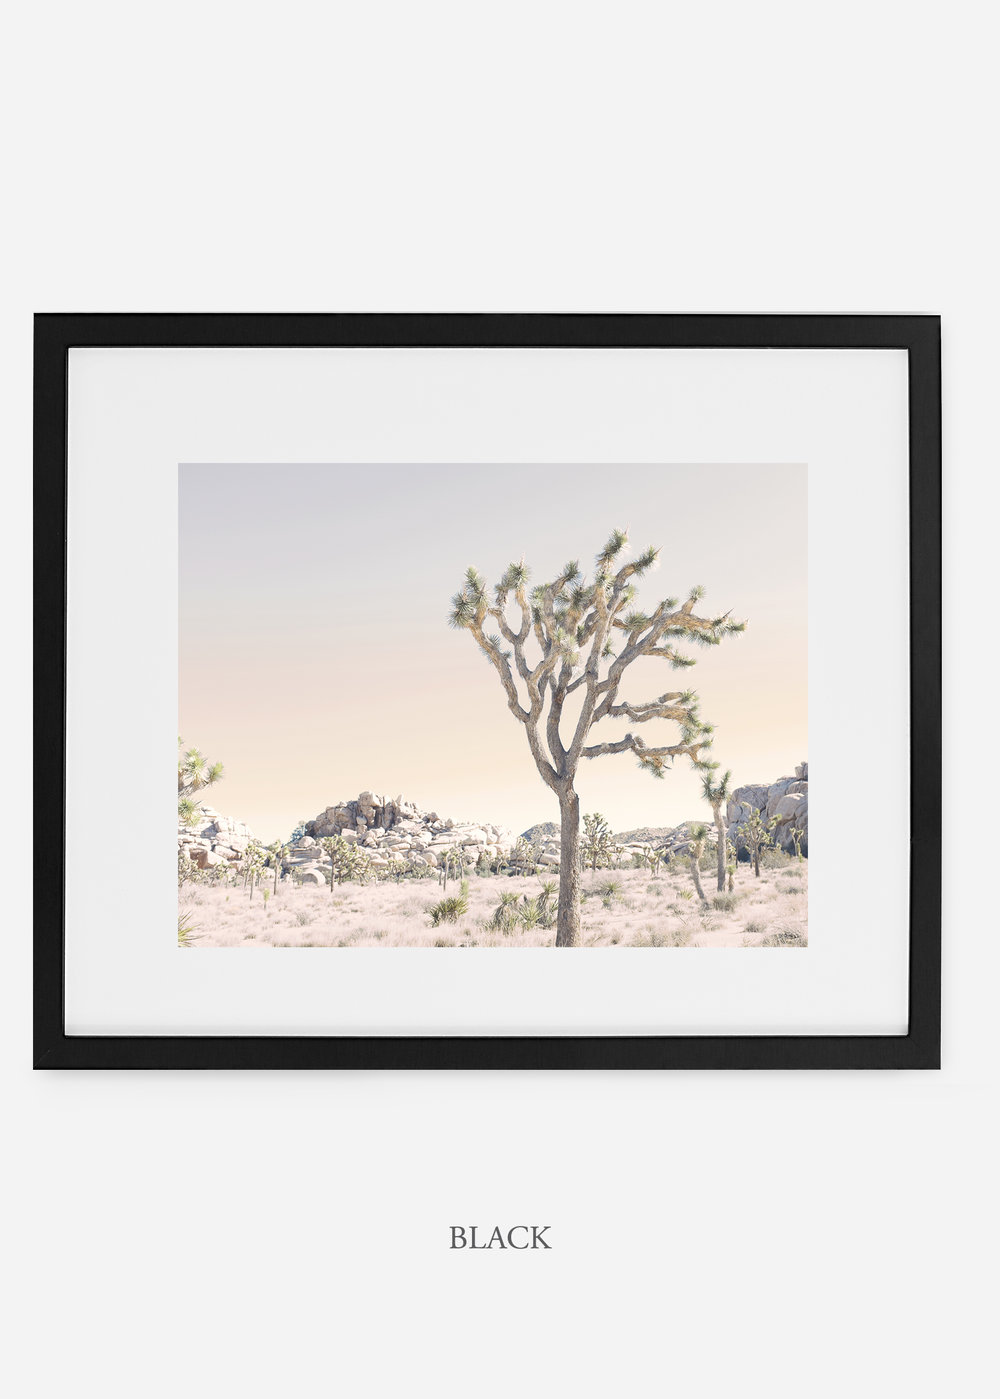 WilderCalifornia_blackframe_JoshuaTree_No.3_interiordesign_prints_art.jpg